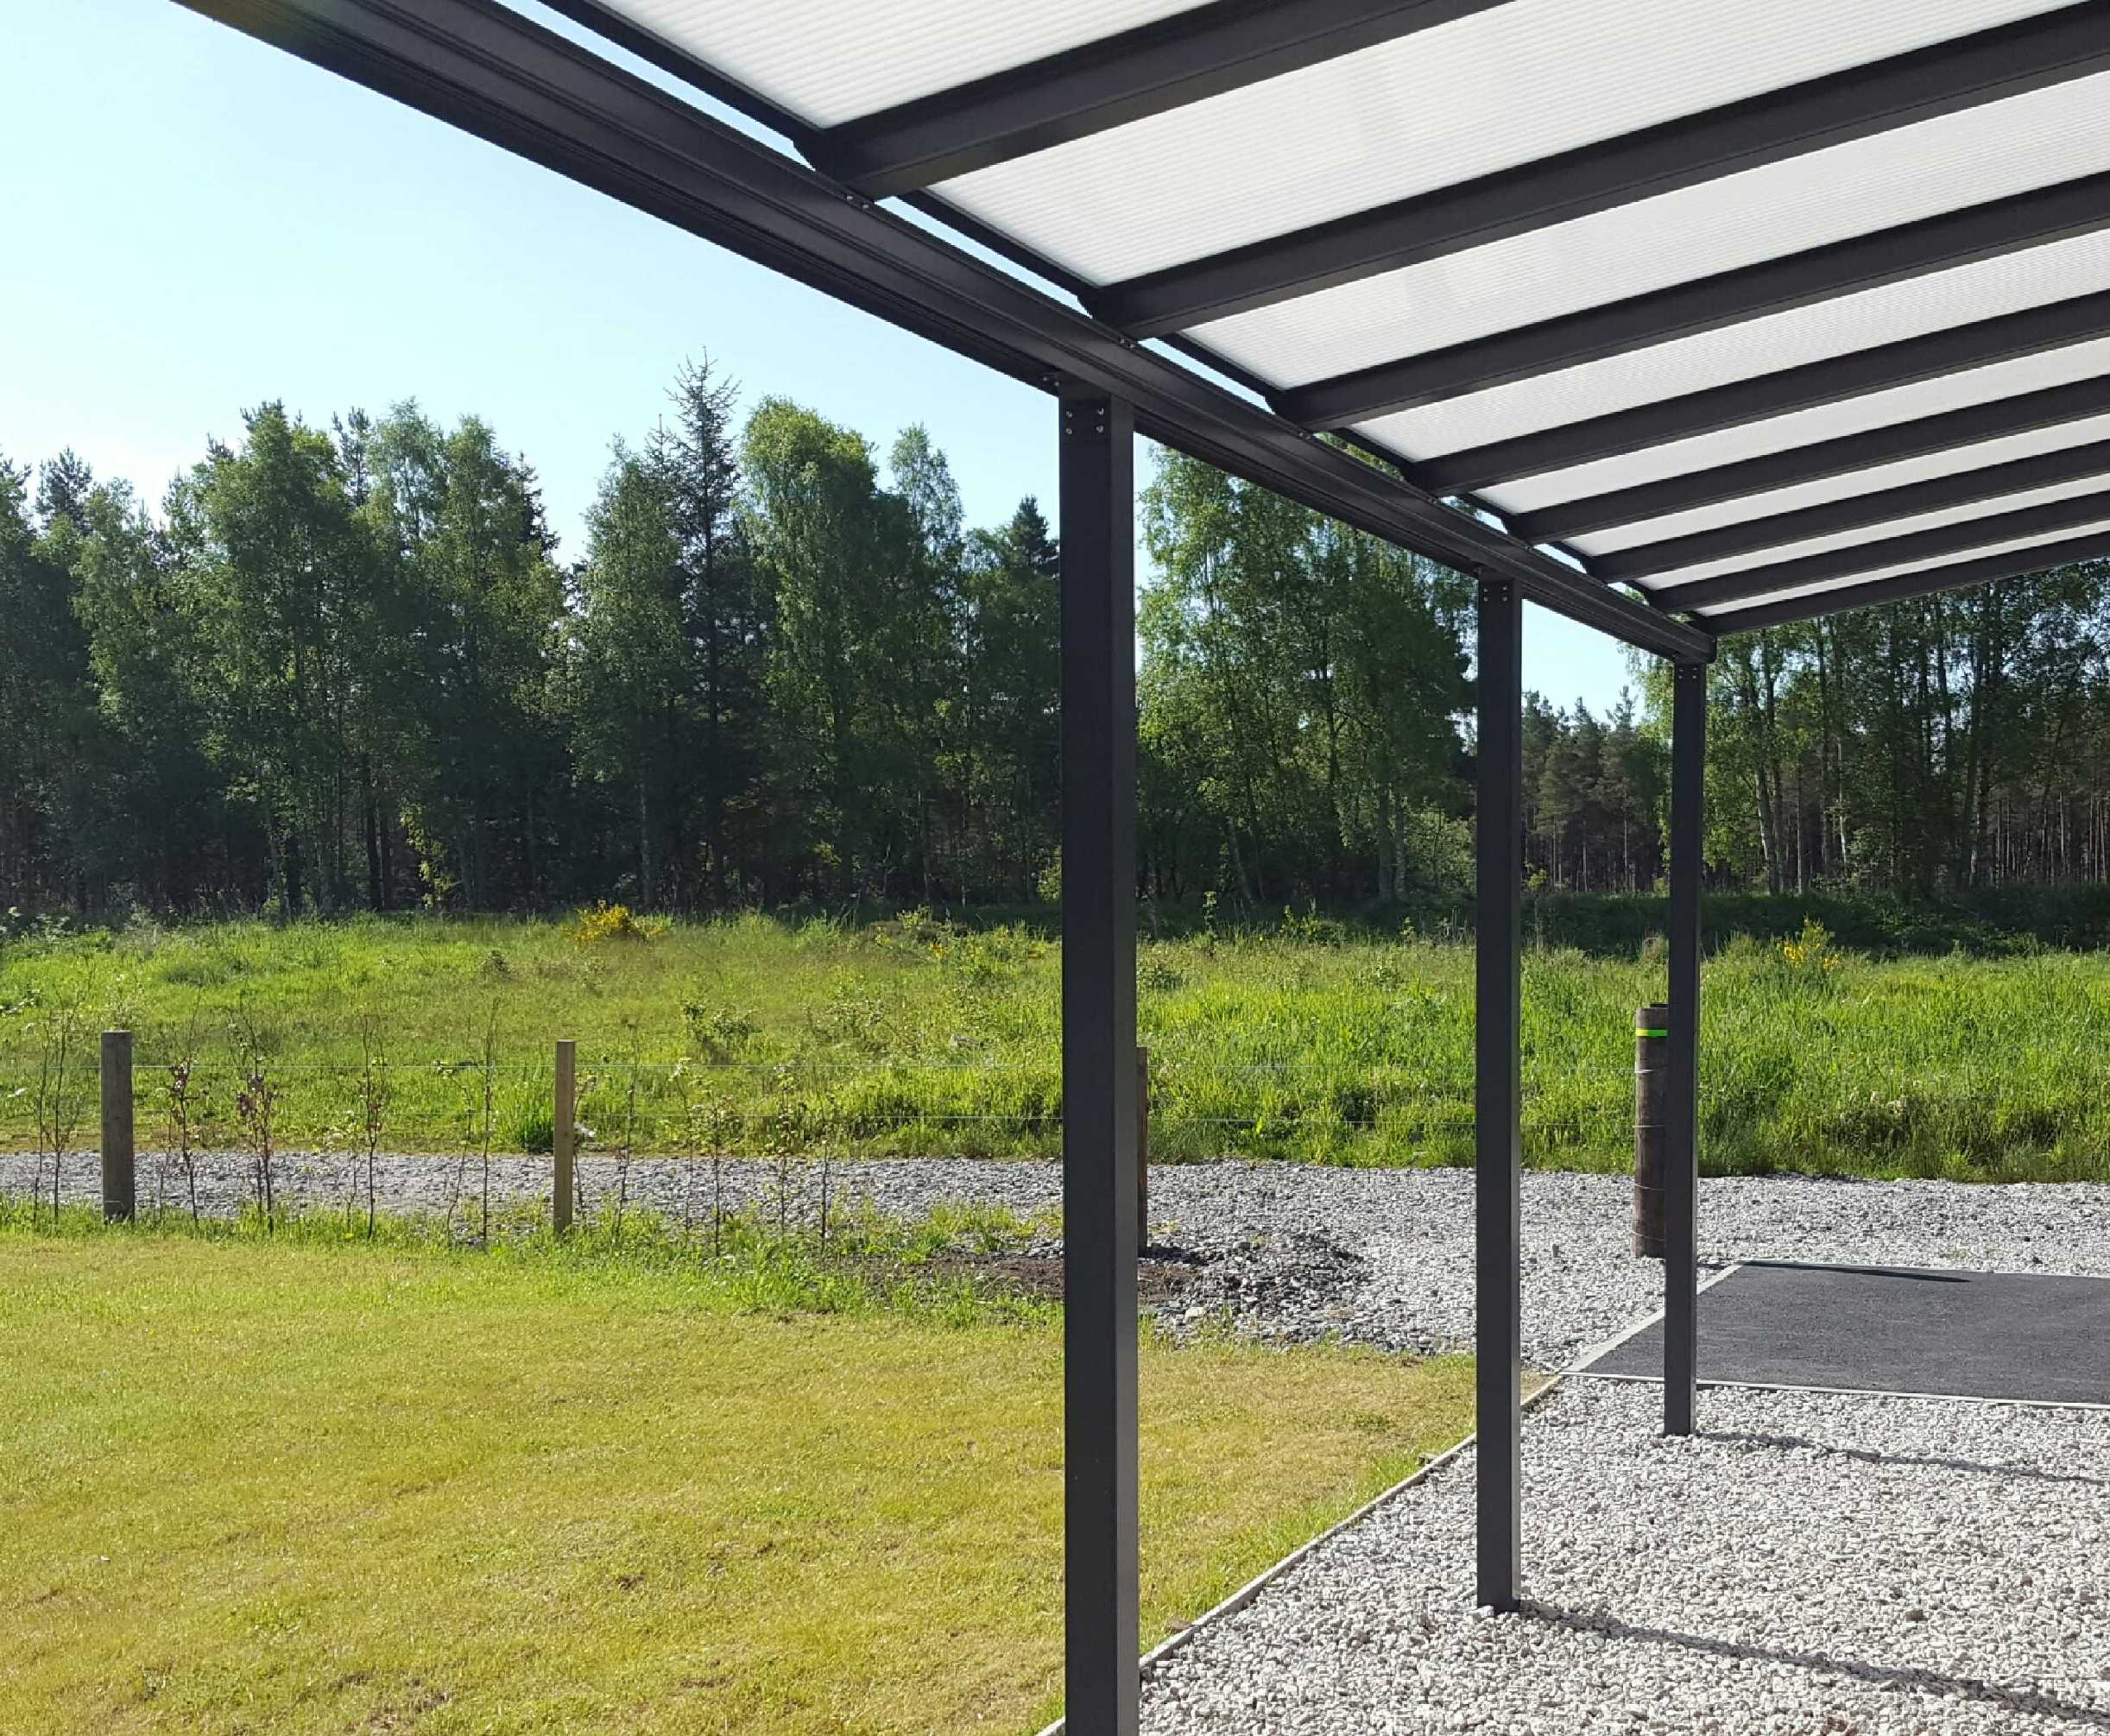 Omega Smart Lean-To Canopy, Anthracite Grey, UNGLAZED for 6mm Glazing - 4.2m (W) x 2.5m (P), (3) Supporting Posts